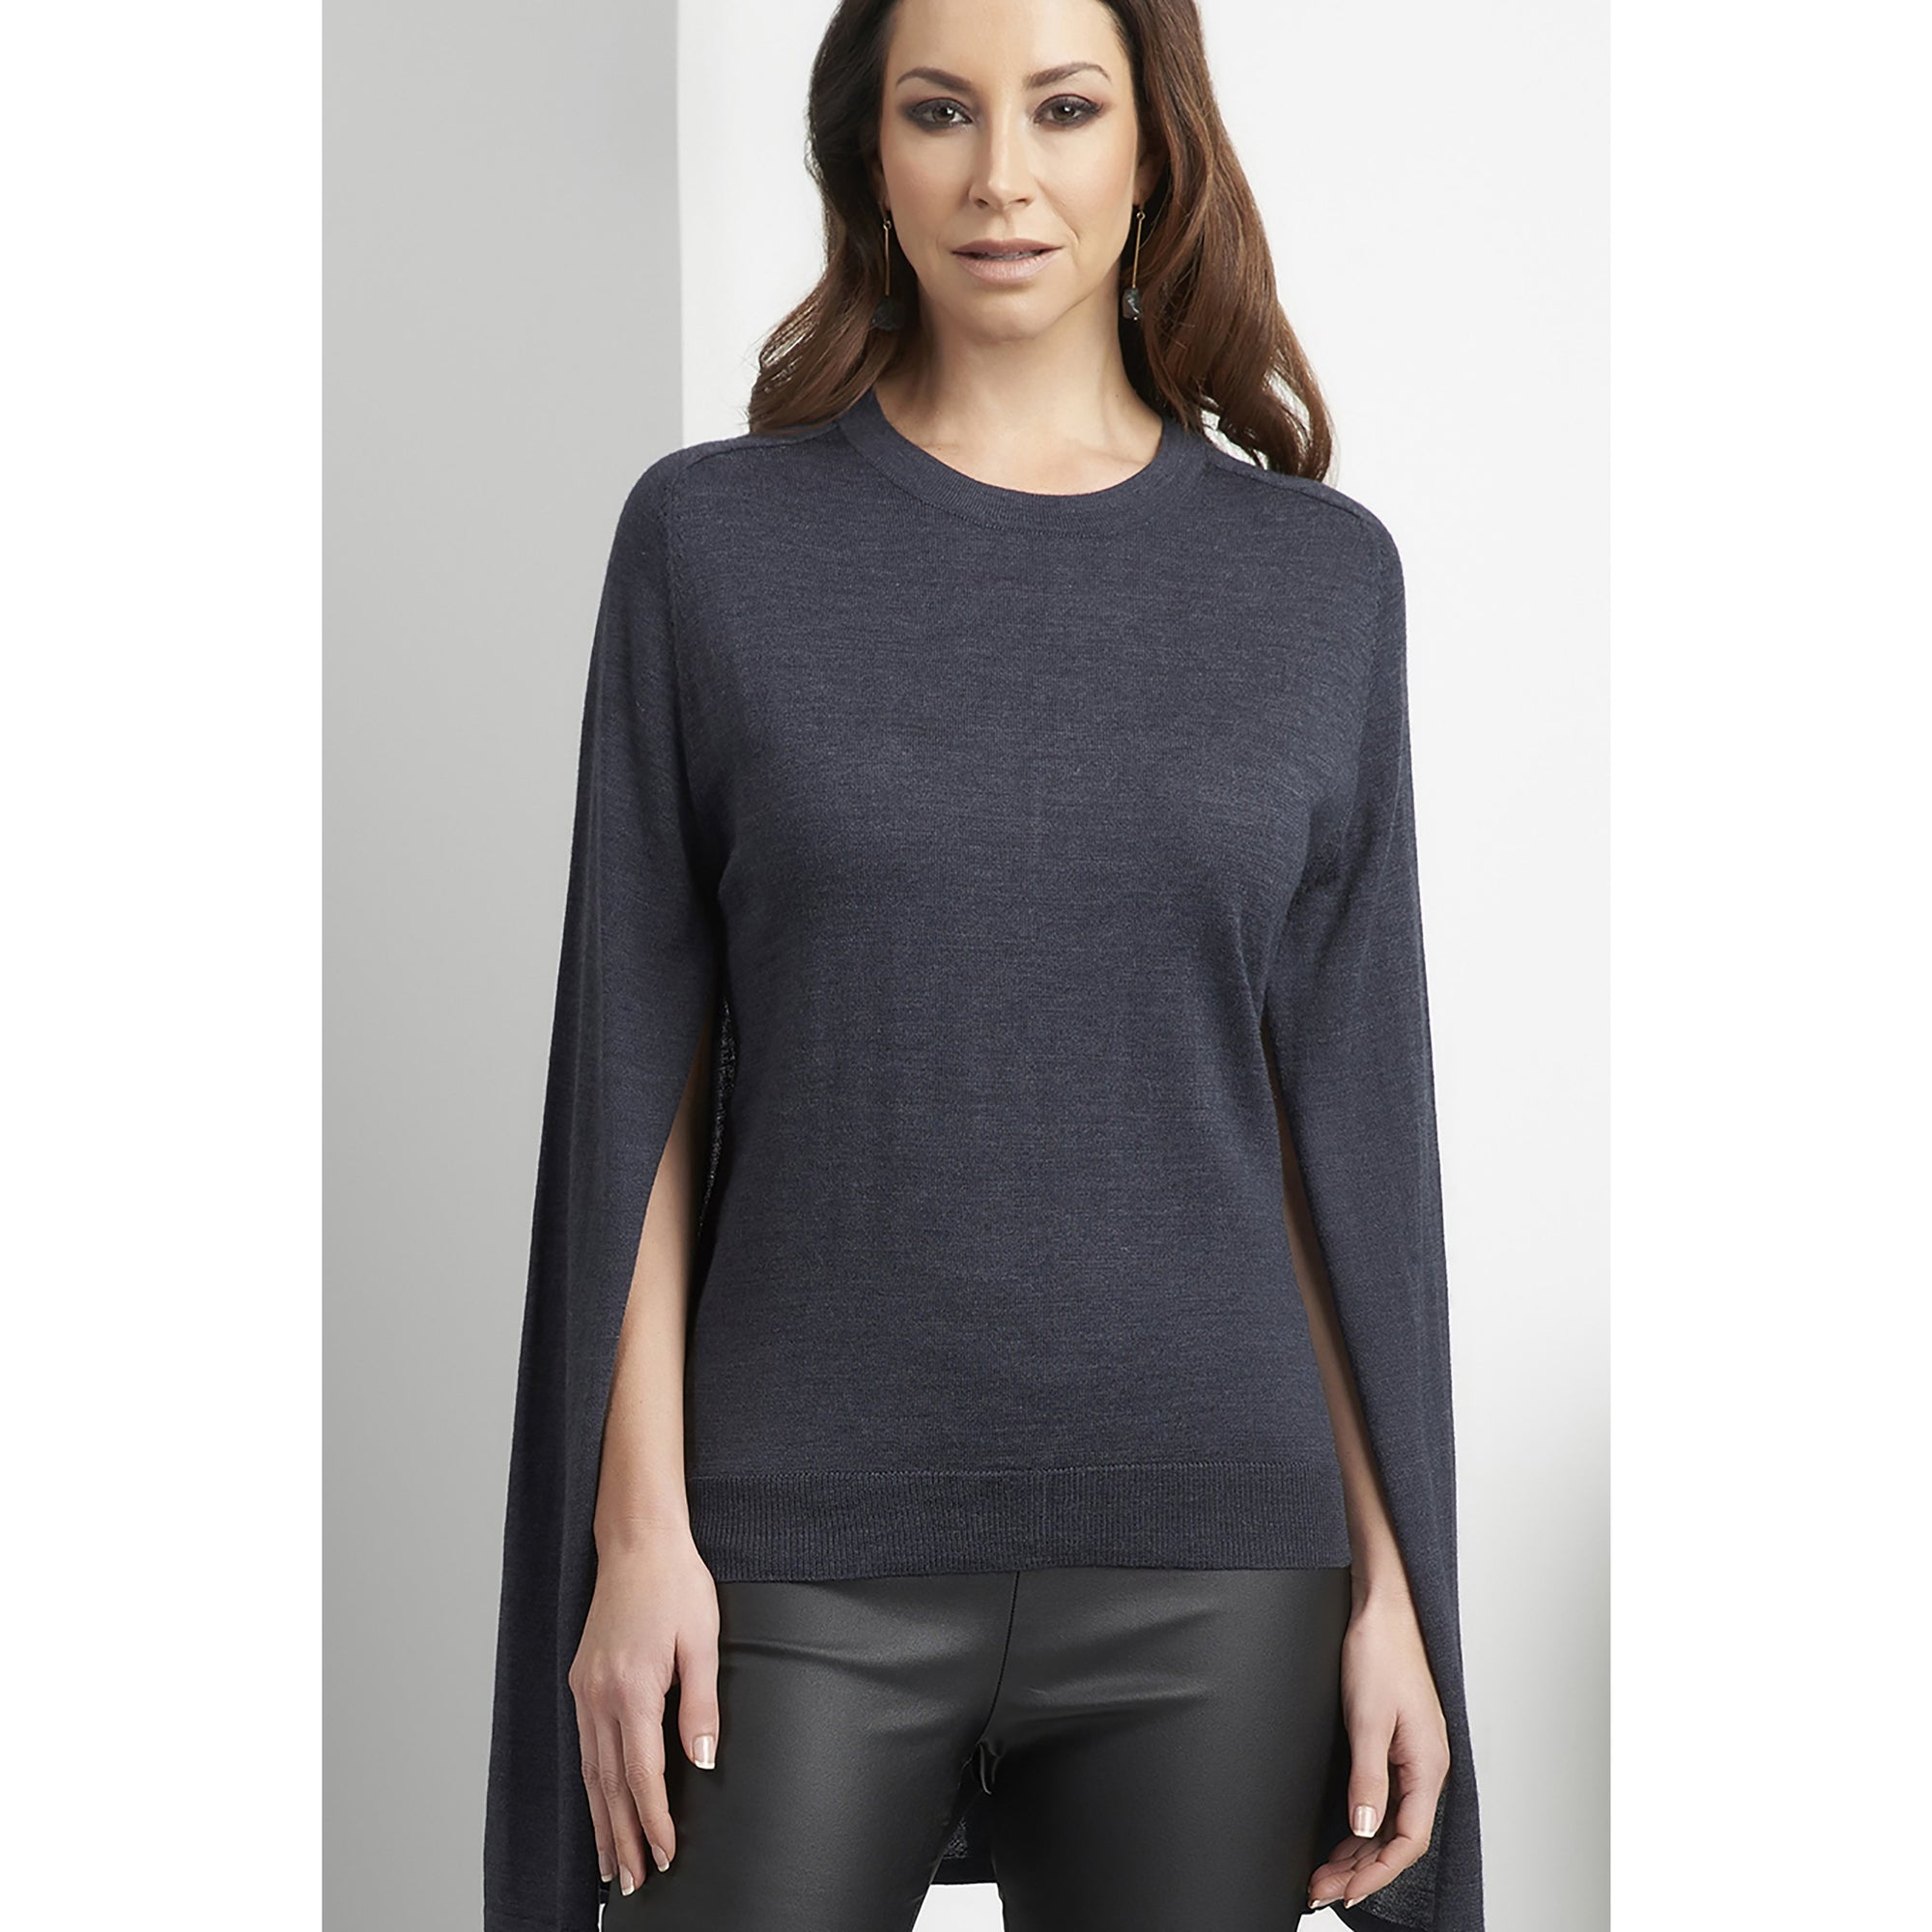 Foil Right To Bare Arms Knit top in Twilight